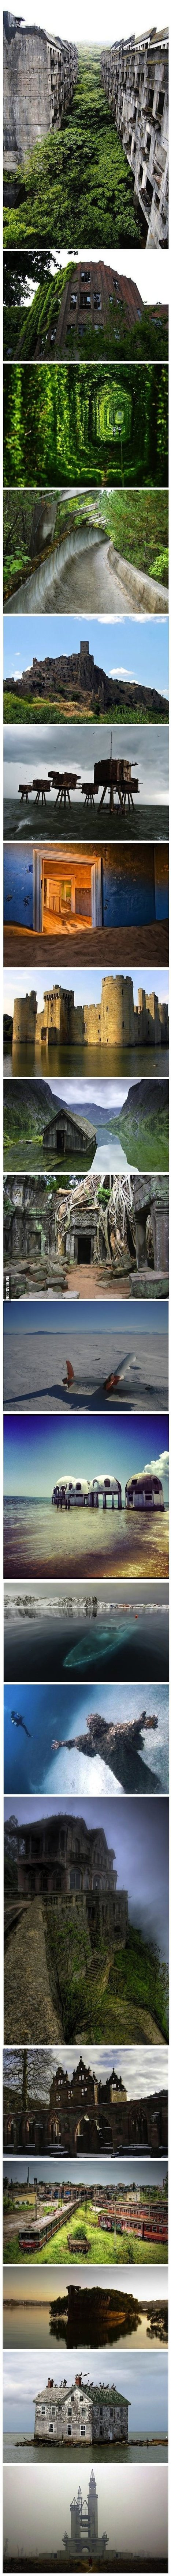 The 20 most awesome abandoned places | Modern Ruins, Decay and Urban Exploration | Scoop.it